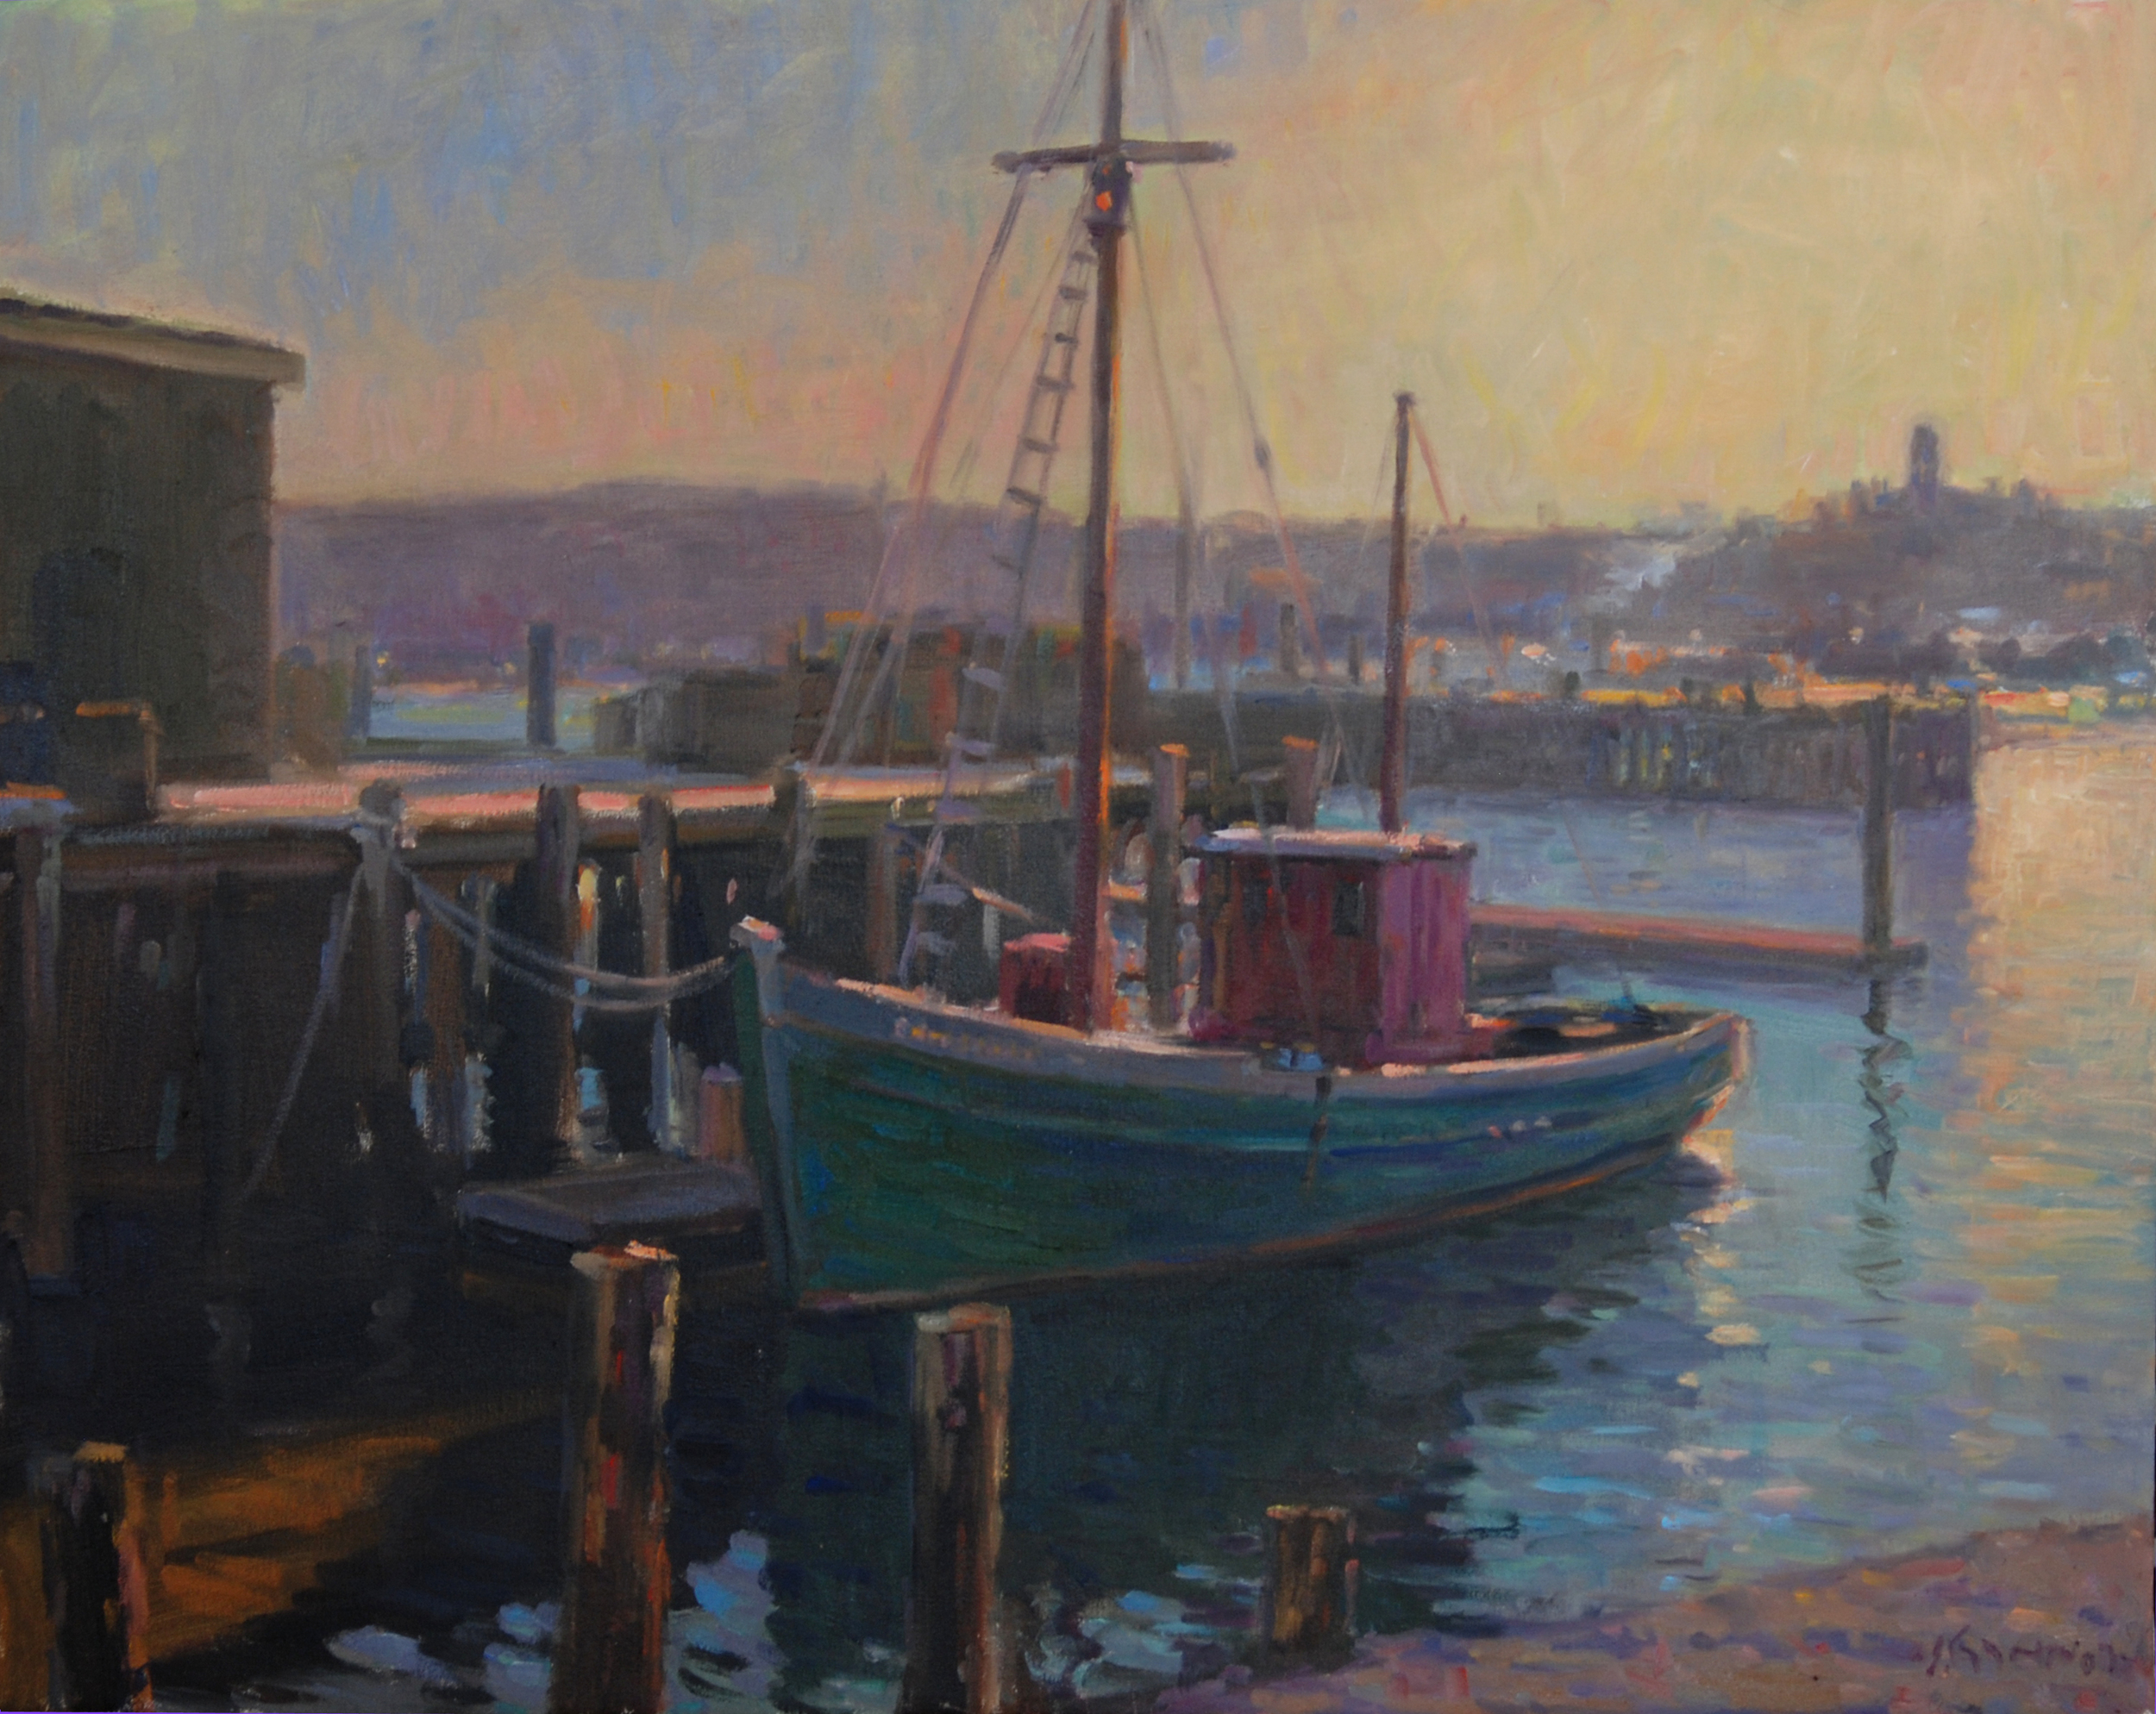 Old Sail in the Harbor, Oil on canvas, 22x28 inches. [sold]